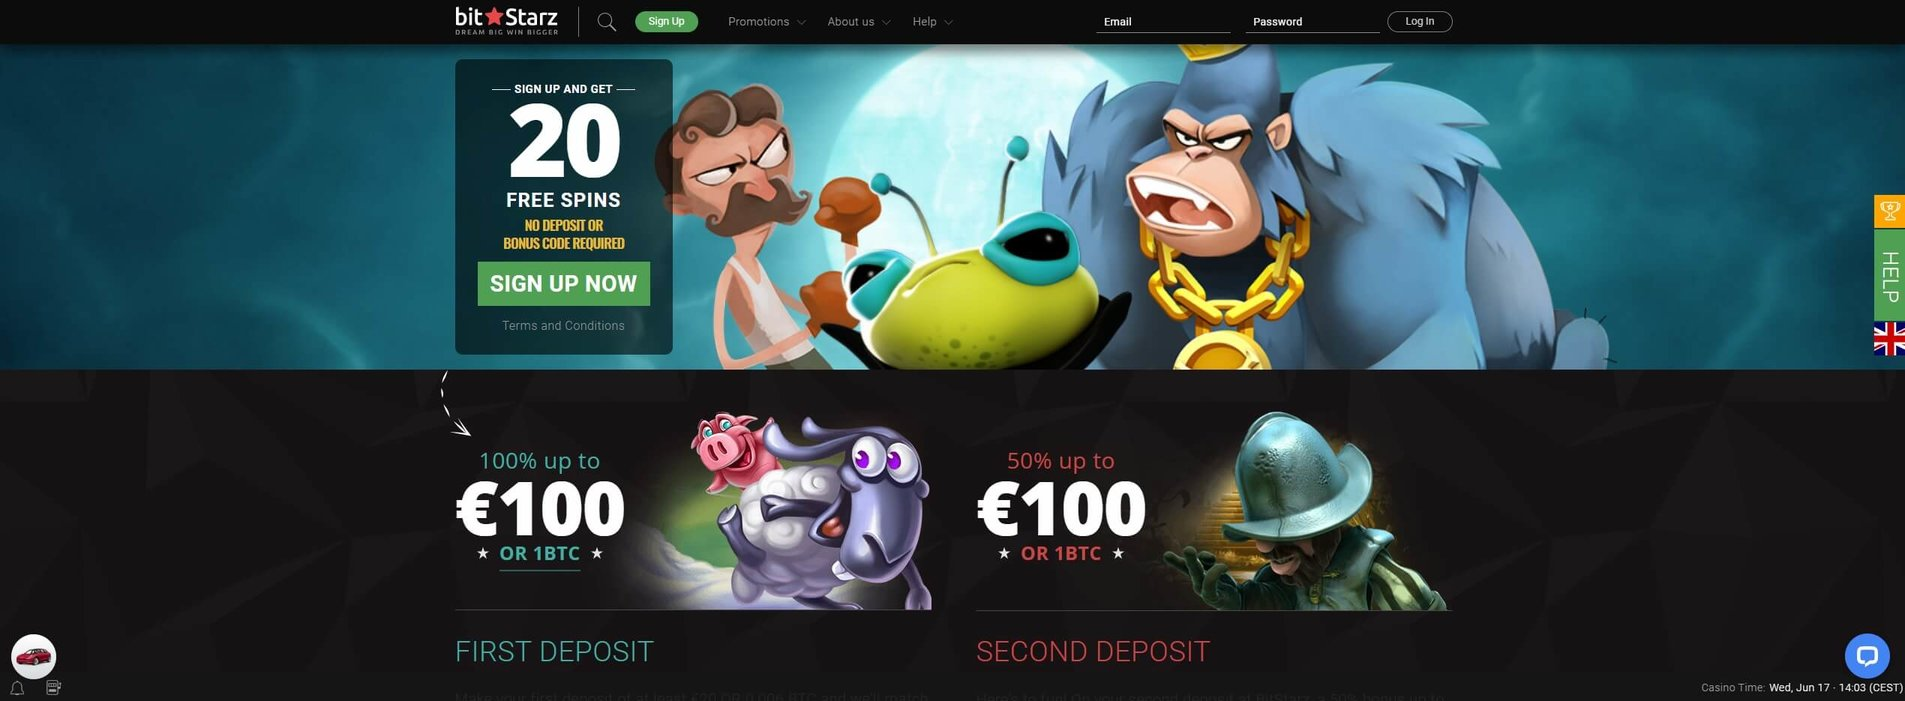 Promotions at BitStarz Casino